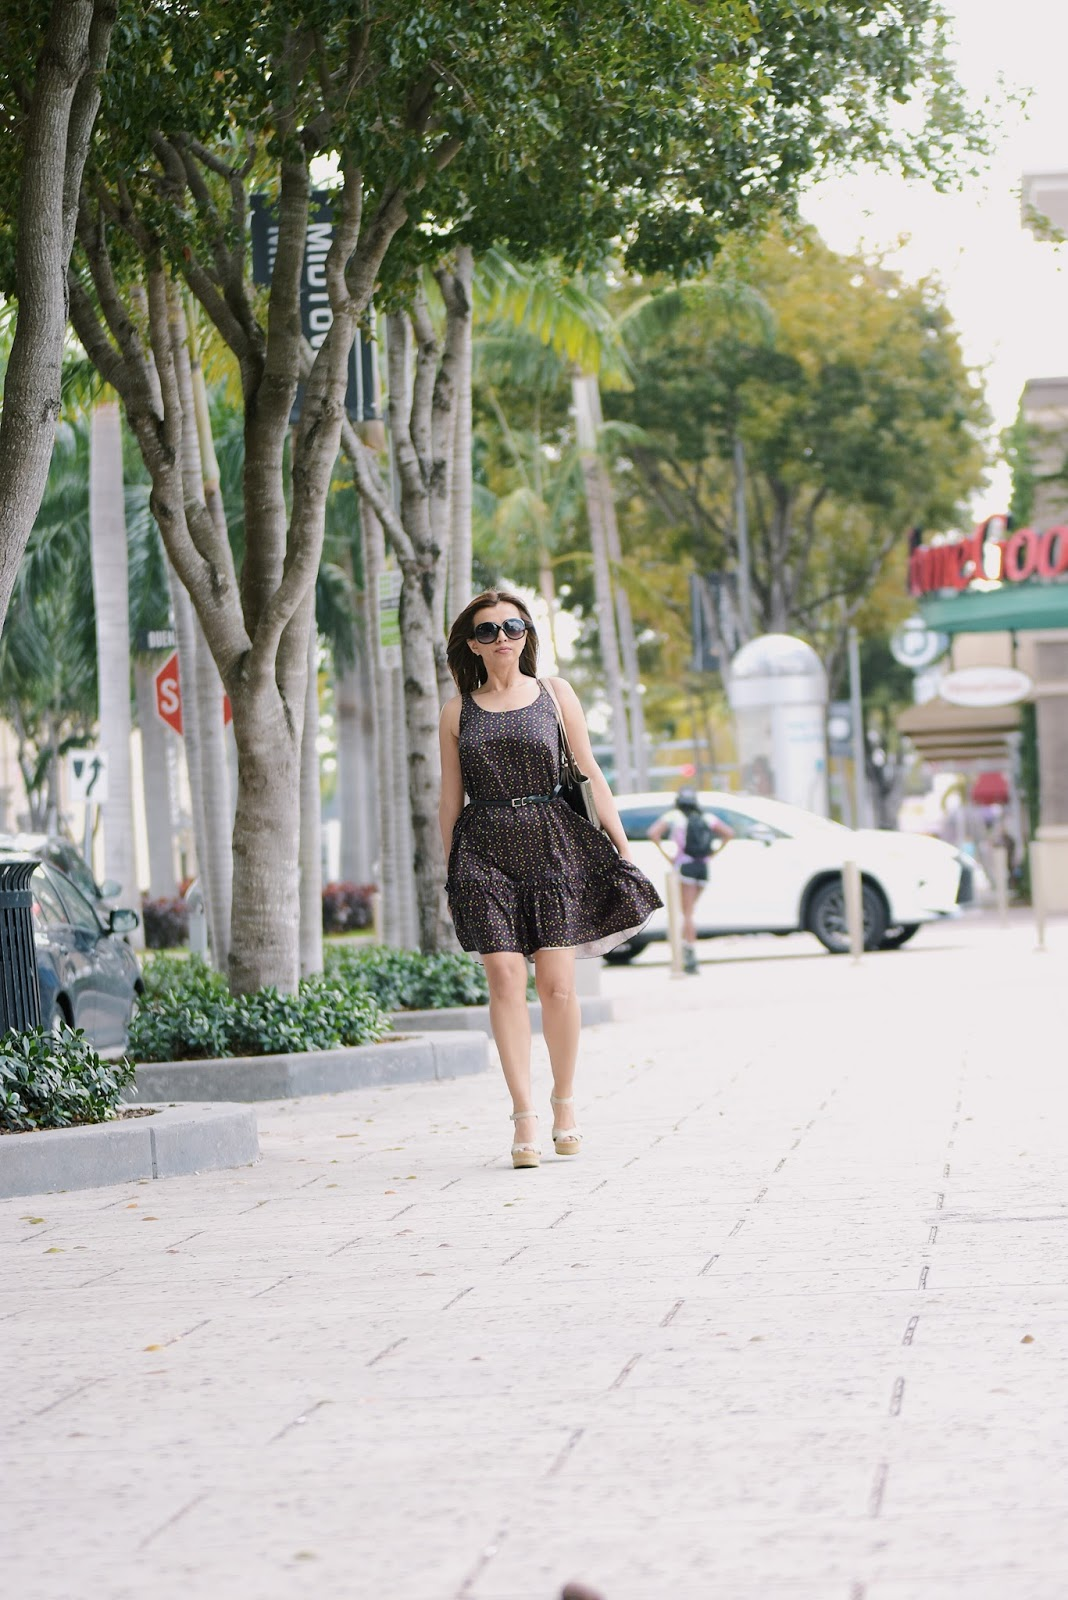 Monday Mood-MariEstilo- Look of the day-Fashion Blogger-MariEstiloTravels-Miami-Moda y estilo